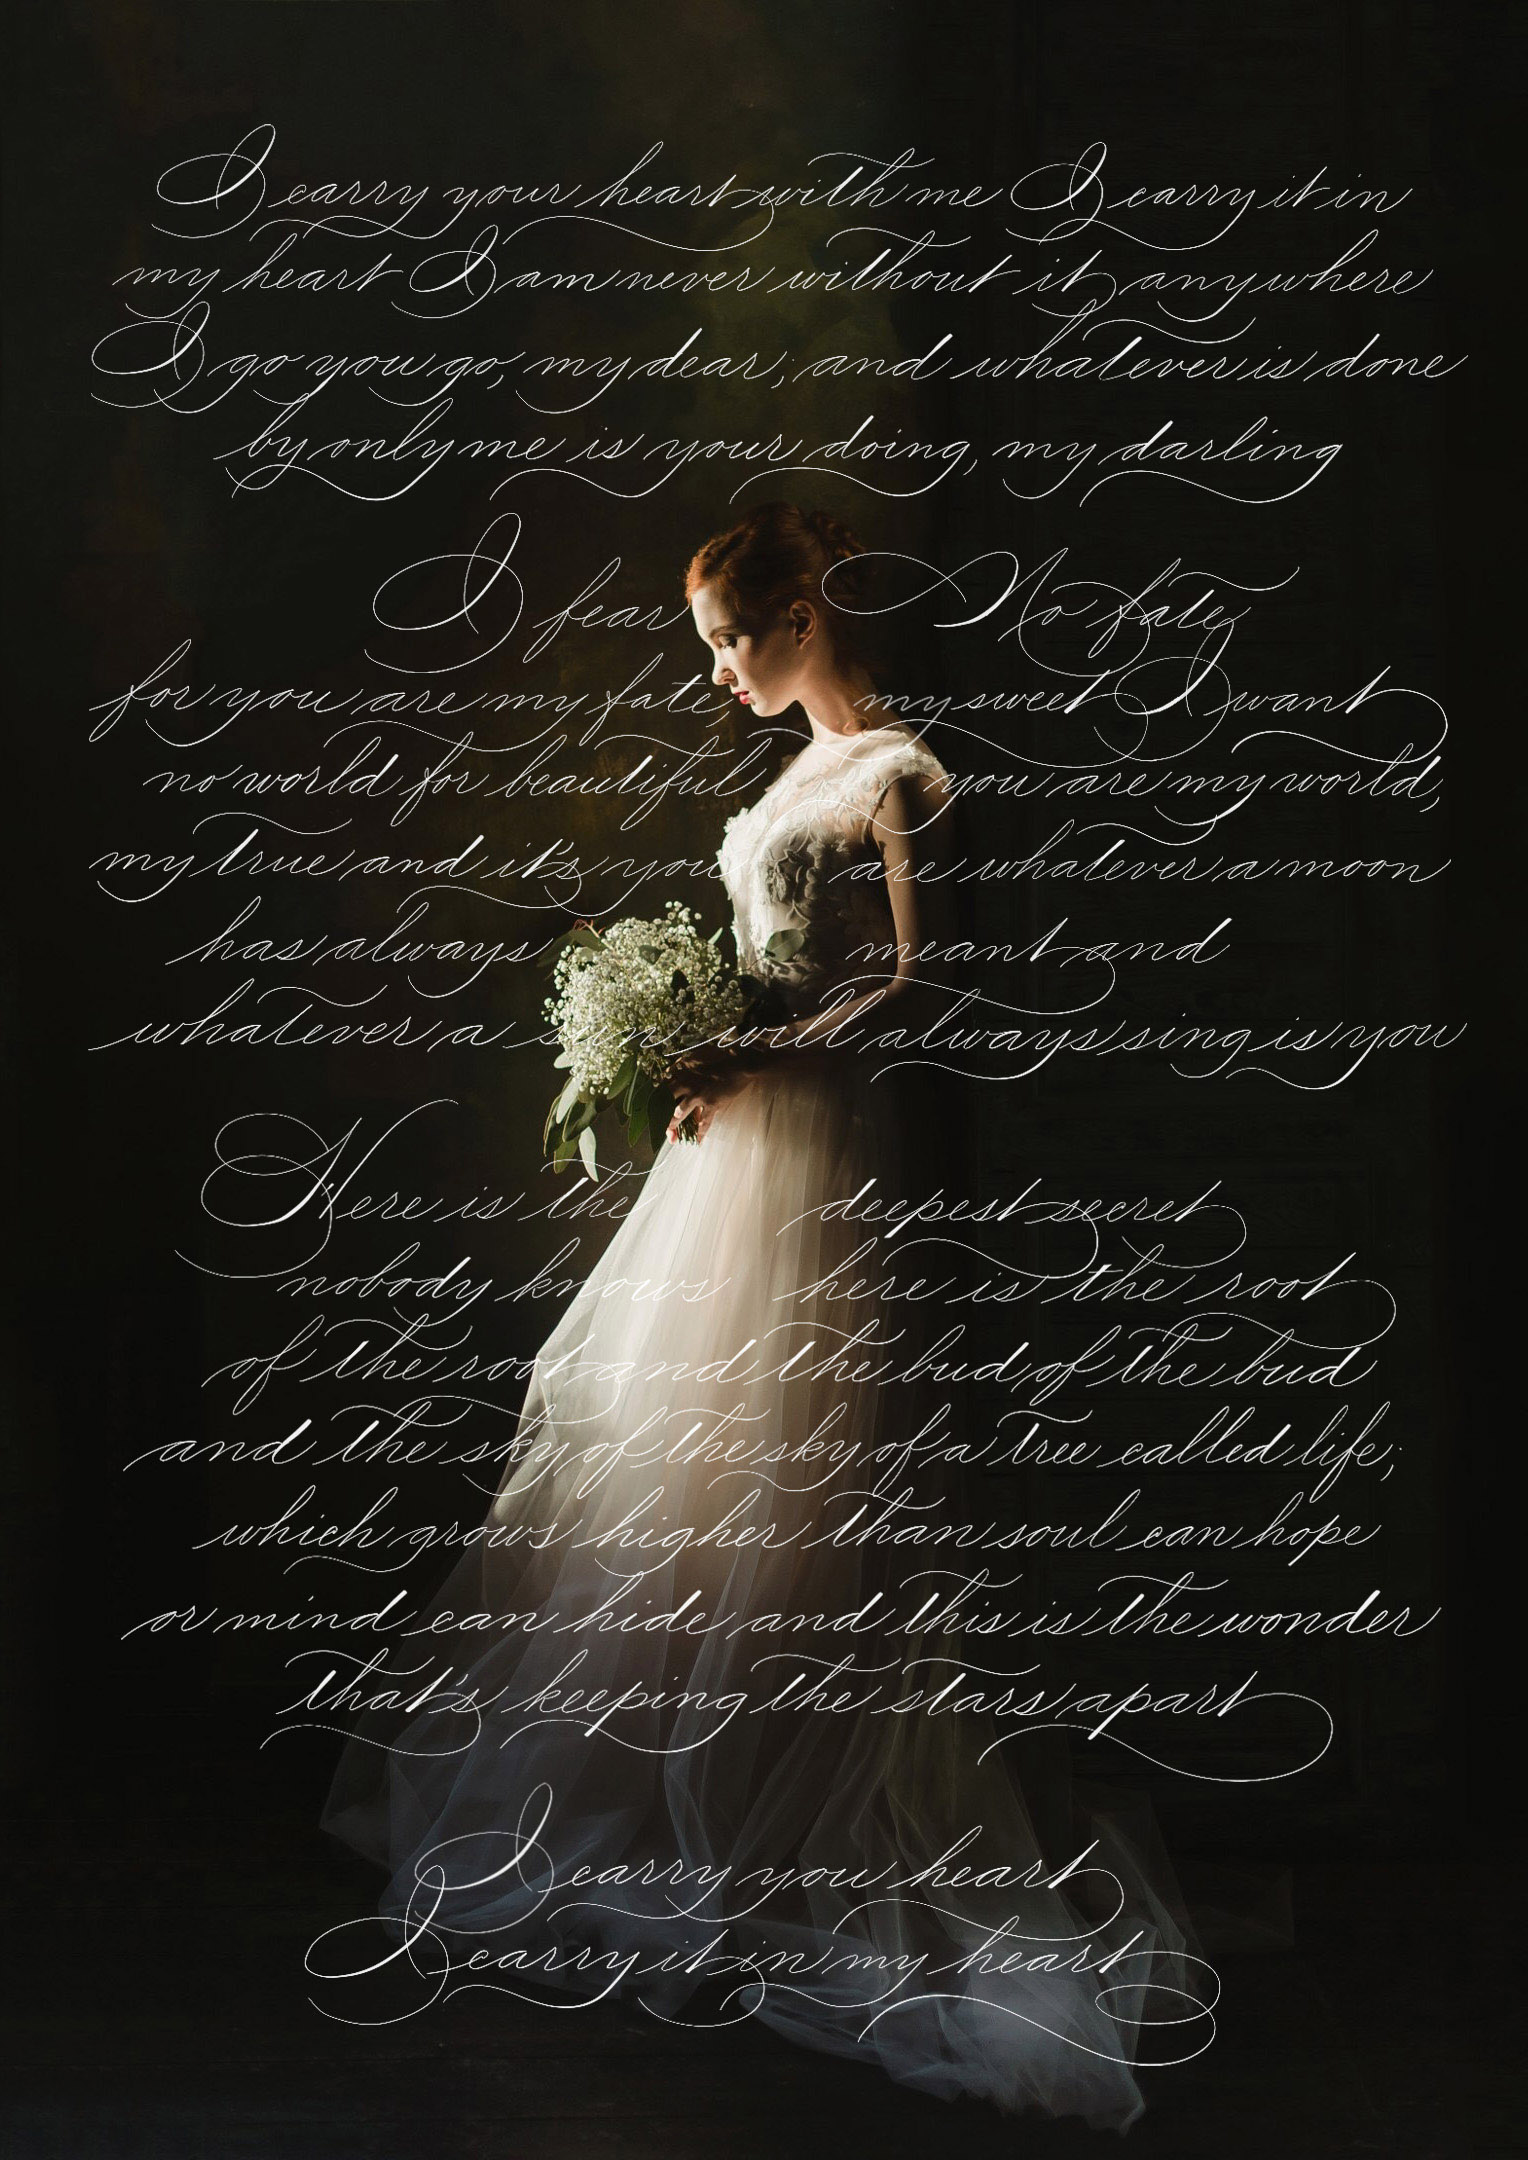 """Cummings' poem """"I carry your heart with me"""" written in Spencerian style calligraphy by Type and Graphics Lab 